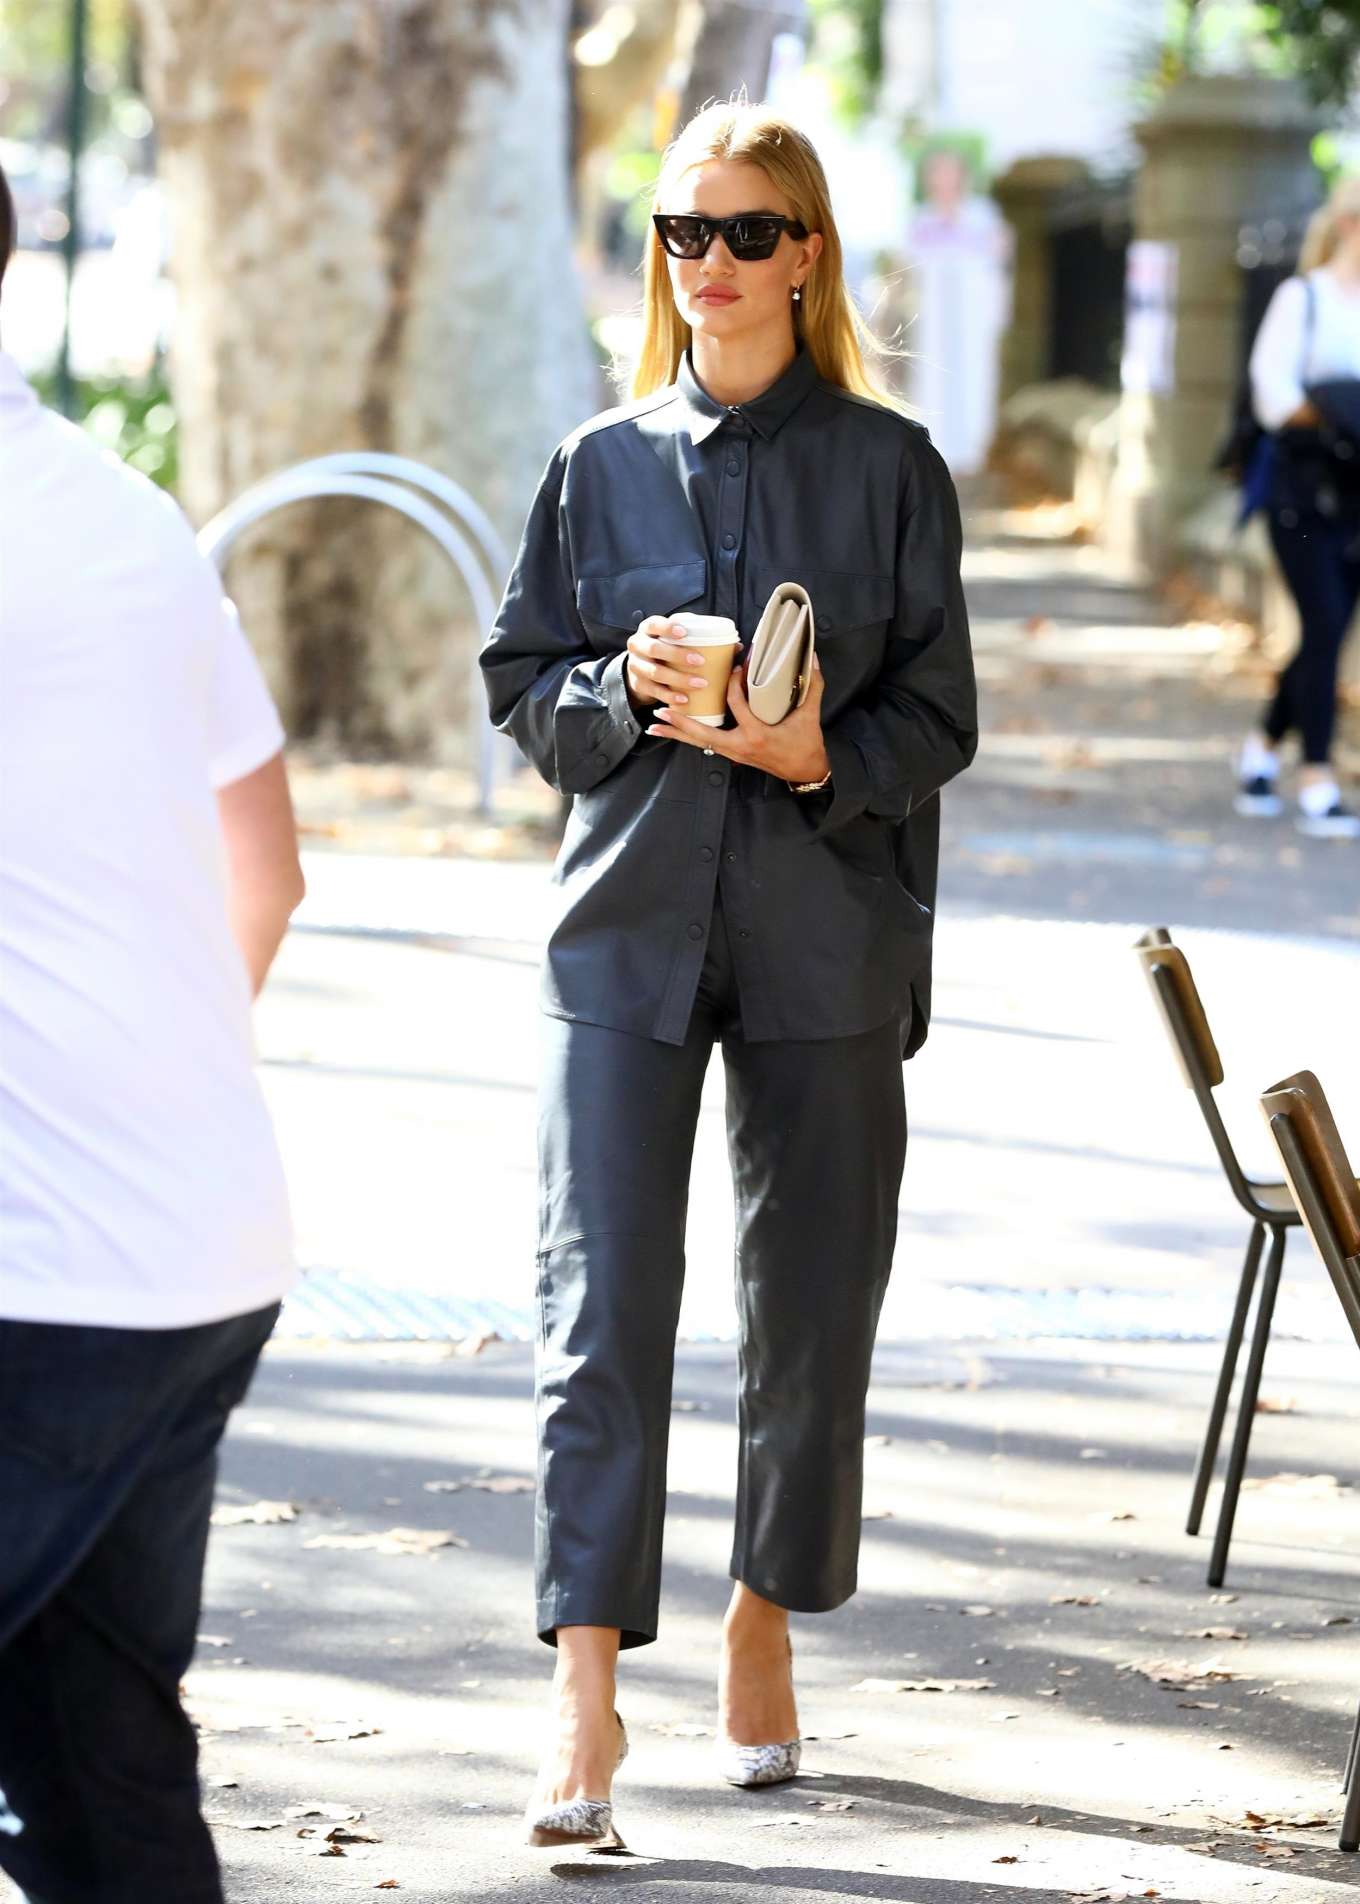 Rosie Huntington Whiteley 2019 : Rosie Huntington Whiteley: Out for coffee in Surry Hills-17